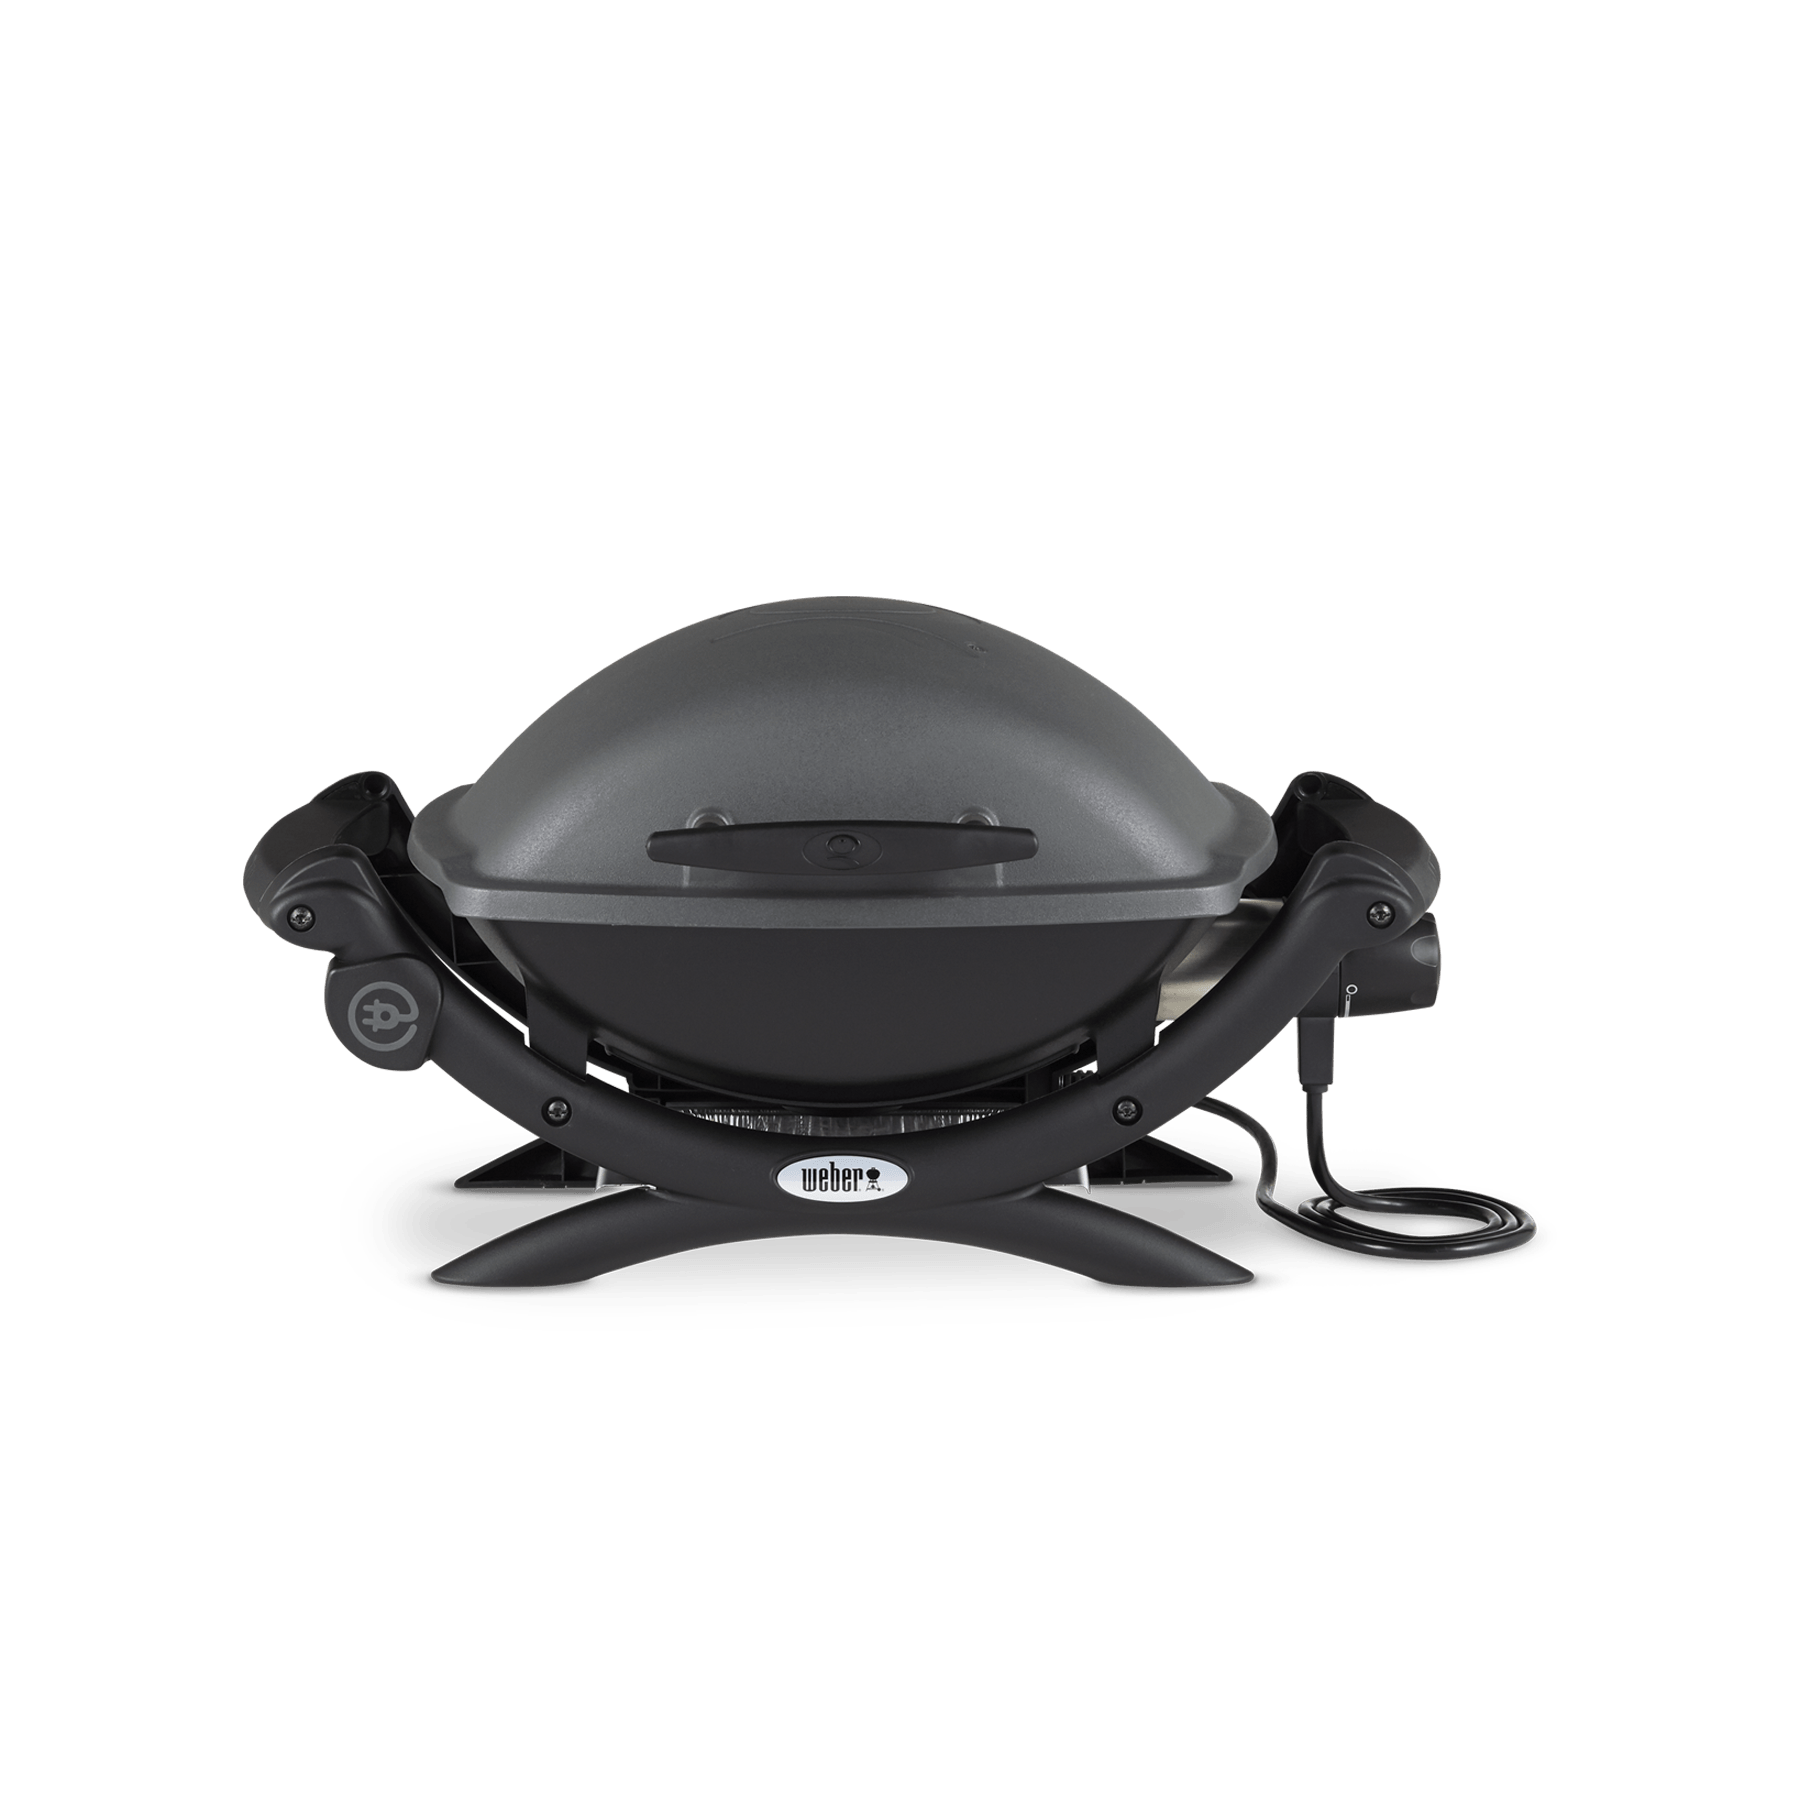 Bbq Hoes Action Weber Q 1400 Electric Grill Q Electric Series Electric Grills